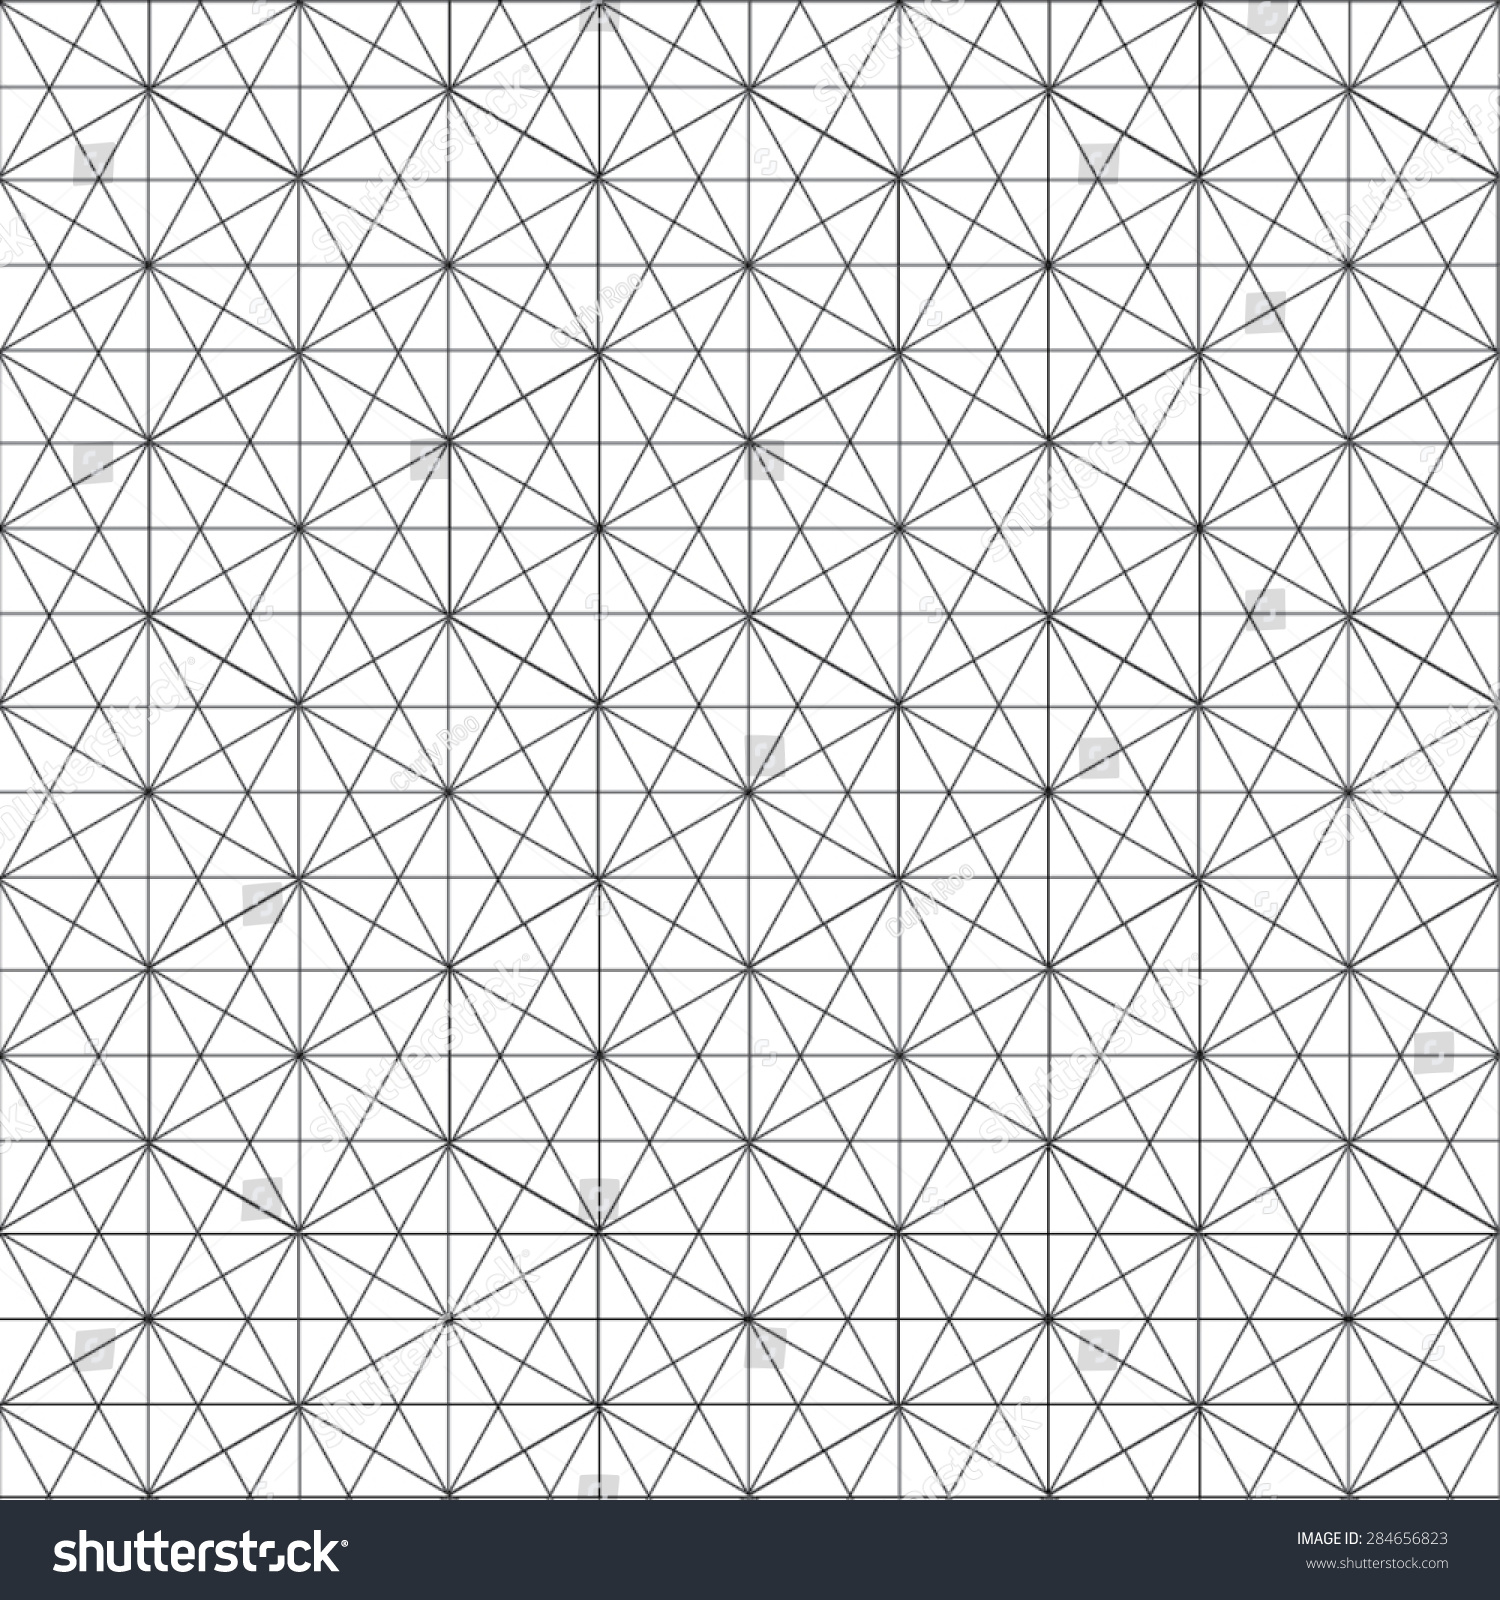 Line Textures Illustrator : Geometric line pattern background seamless modern style